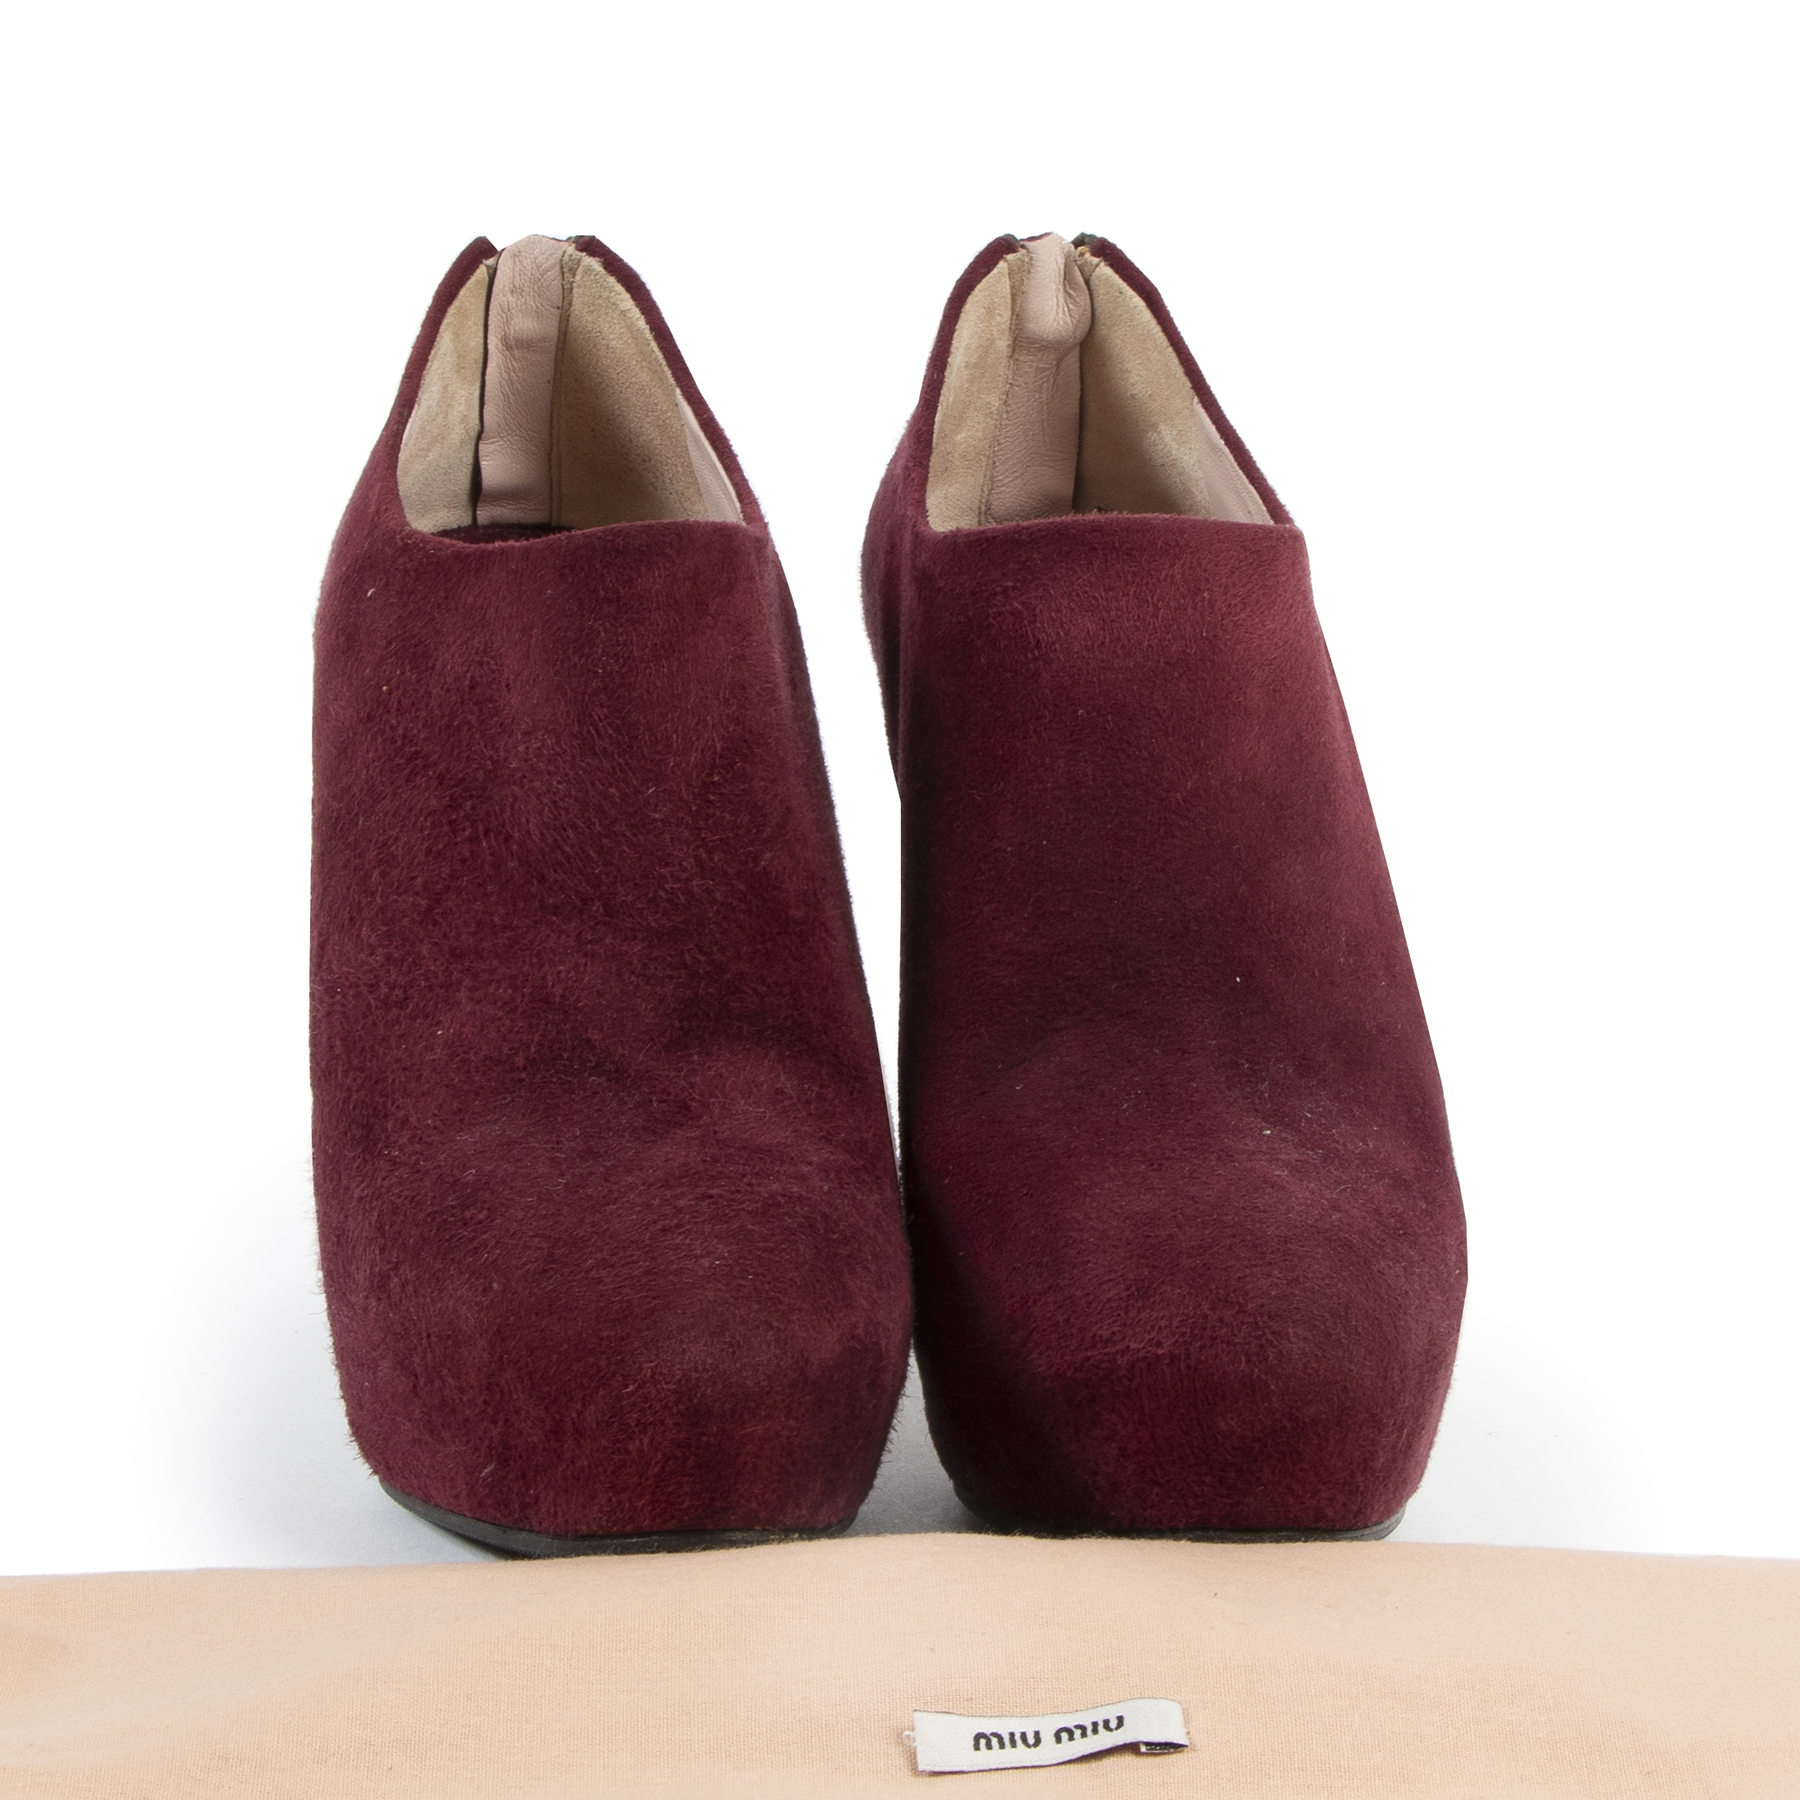 Authentic secondhand Miu Miu Bordeaux Suede Ankle Booties - Size 38 designer shoes fashion luxury vintage webshop safe secure online shopping